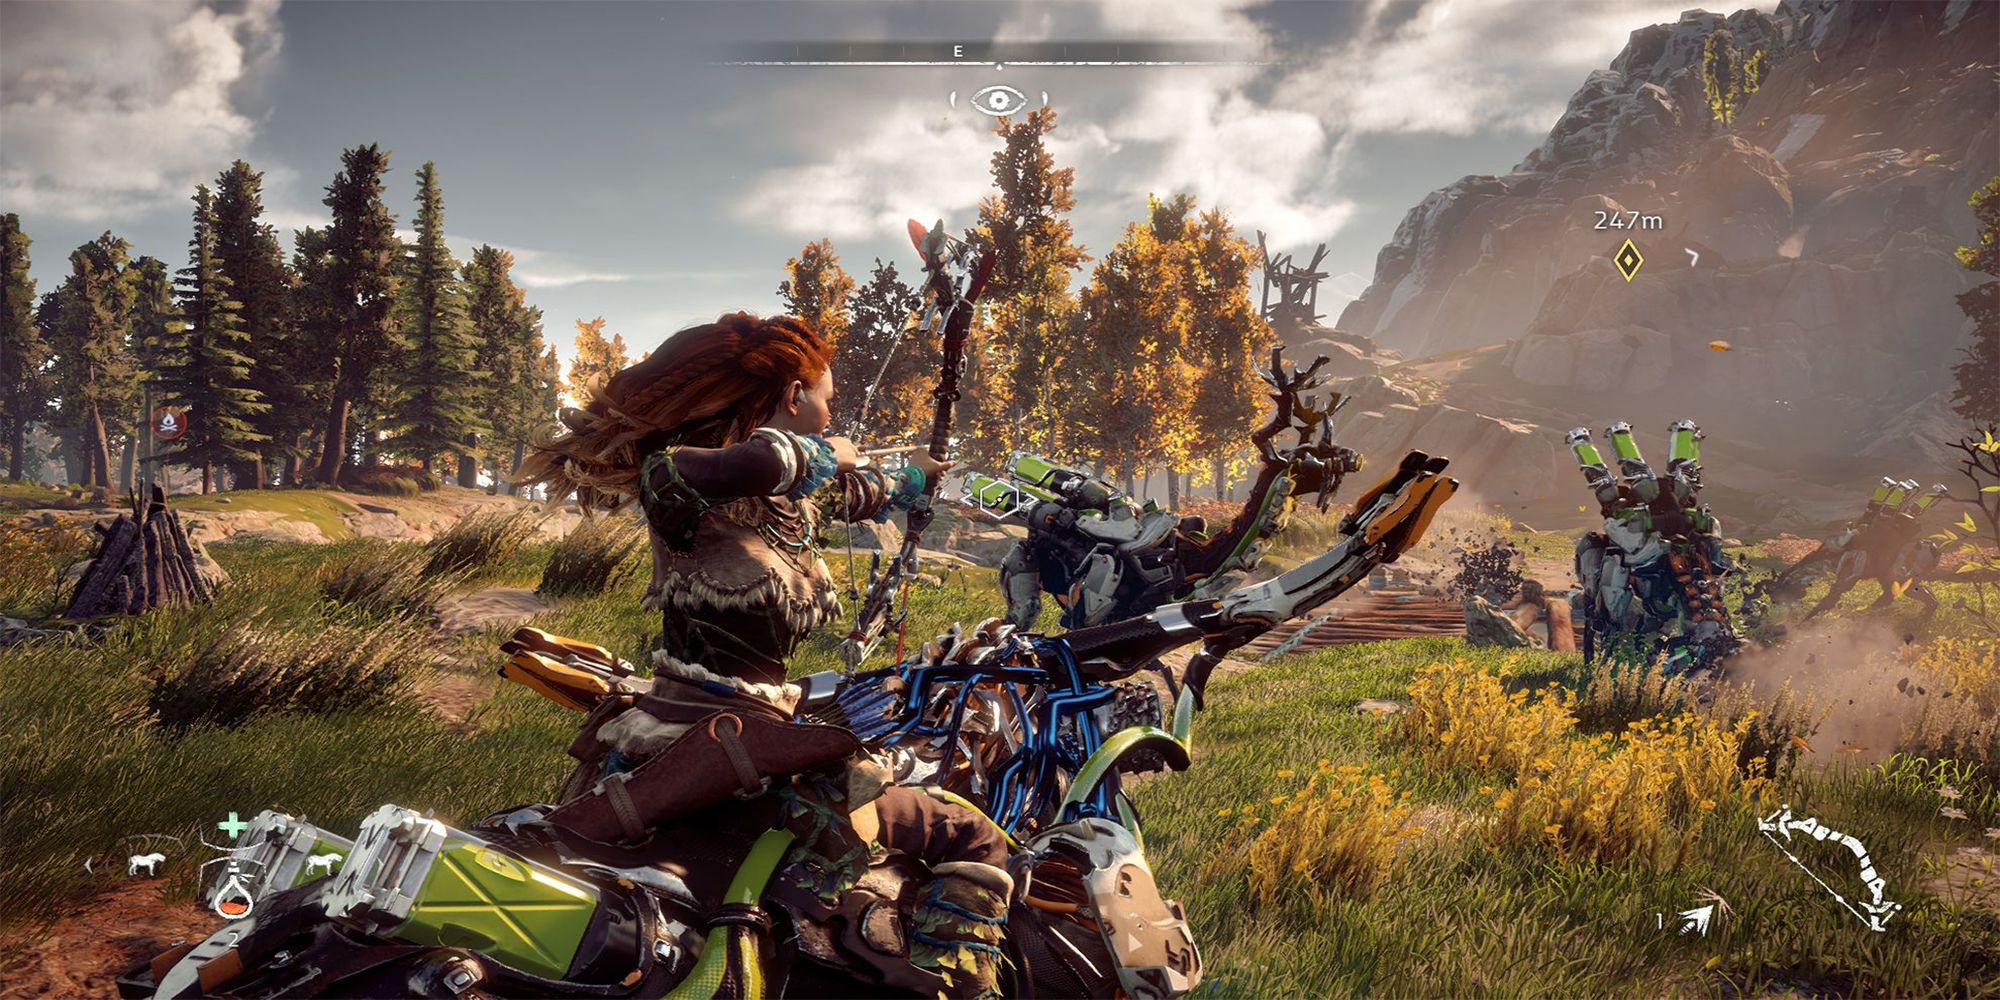 """<p><strong data-redactor-tag=""""strong"""" data-verified=""""redactor""""><em data-redactor-tag=""""em"""" data-verified=""""redactor"""">$40<a href=""""https://www.amazon.com/Horizon-Zero-Dawn-PlayStation-4/dp/B00ZQC73O8/?tag=bp_links-20"""" target=""""_blank"""" class=""""slide-buy--button"""" data-tracking-id=""""recirc-text-link"""">BUY NOW</a></em></strong><span class=""""redactor-invisible-space"""" data-verified=""""redactor"""" data-redactor-tag=""""span"""" data-redactor-class=""""redactor-invisible-space""""></span></p><p><em data-redactor-tag=""""em"""" data-verified=""""redactor"""">Horizon Zero Dawn</em> takes place in a post-apocalyptic society where you take the role as Aloy, a relentless, talented young huntress who was cast away from her tribe.<span class=""""redactor-invisible-space"""" data-verified=""""redactor"""" data-redactor-tag=""""span"""" data-redactor-class=""""redactor-invisible-space"""">The game's vast world is full of mechanized beasts akin to dinosaurs, and fighting these machines is an exhilarating but exhausting experience. As the game goes on, you're able to craft new tools and learn more ways to take them down. The game manages to find the perfect balanceof story, combat, a</span>nd exploration, making it a fine choice to add to your game collection.<br></p>"""